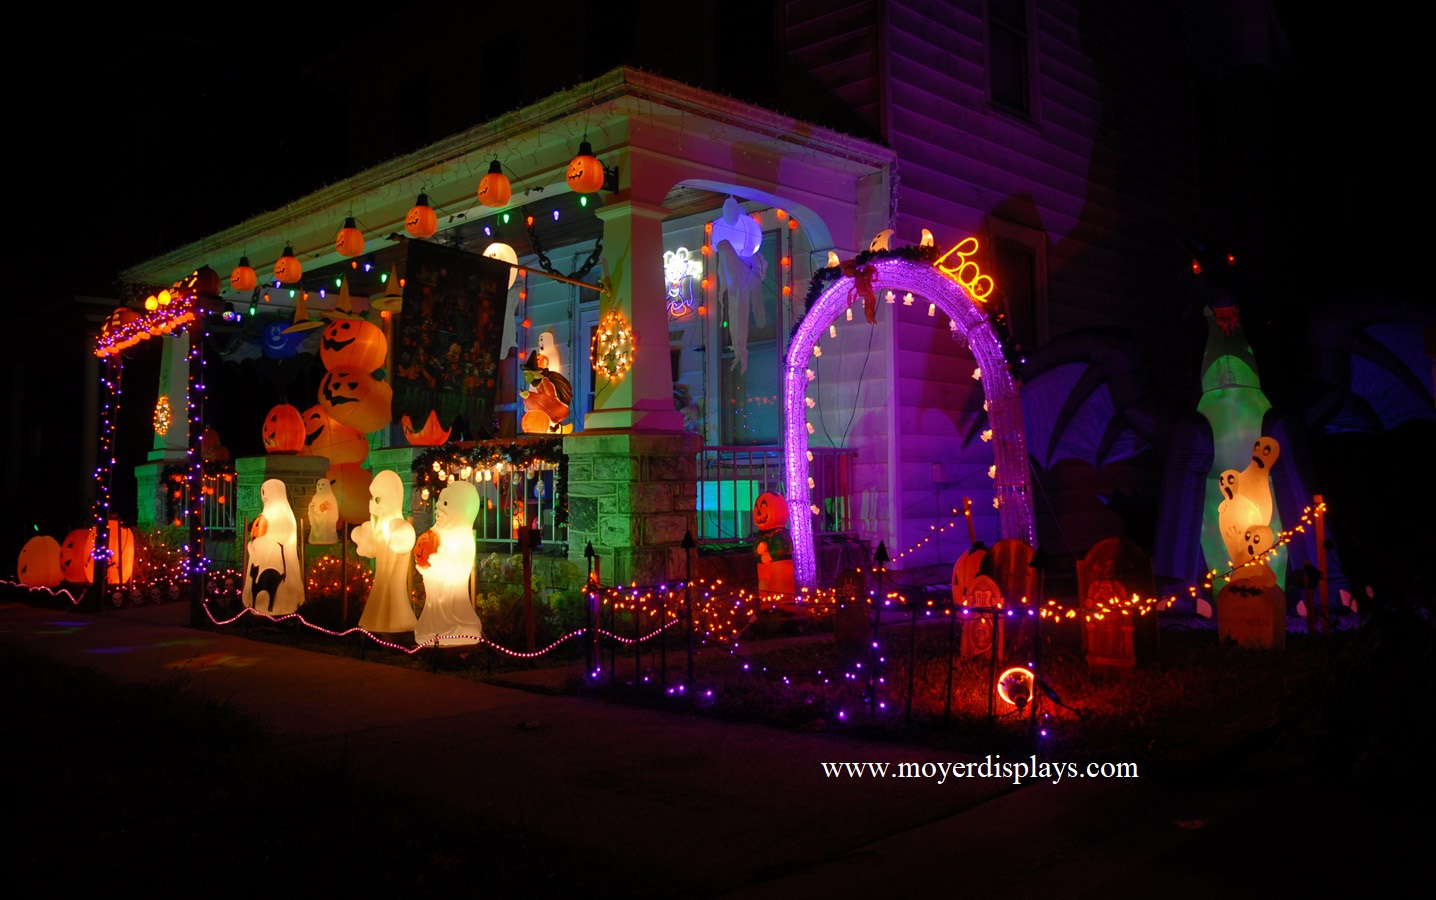 Trick-or-Treat? Moyer Halloween Display ready to delight young ghouls & goblins